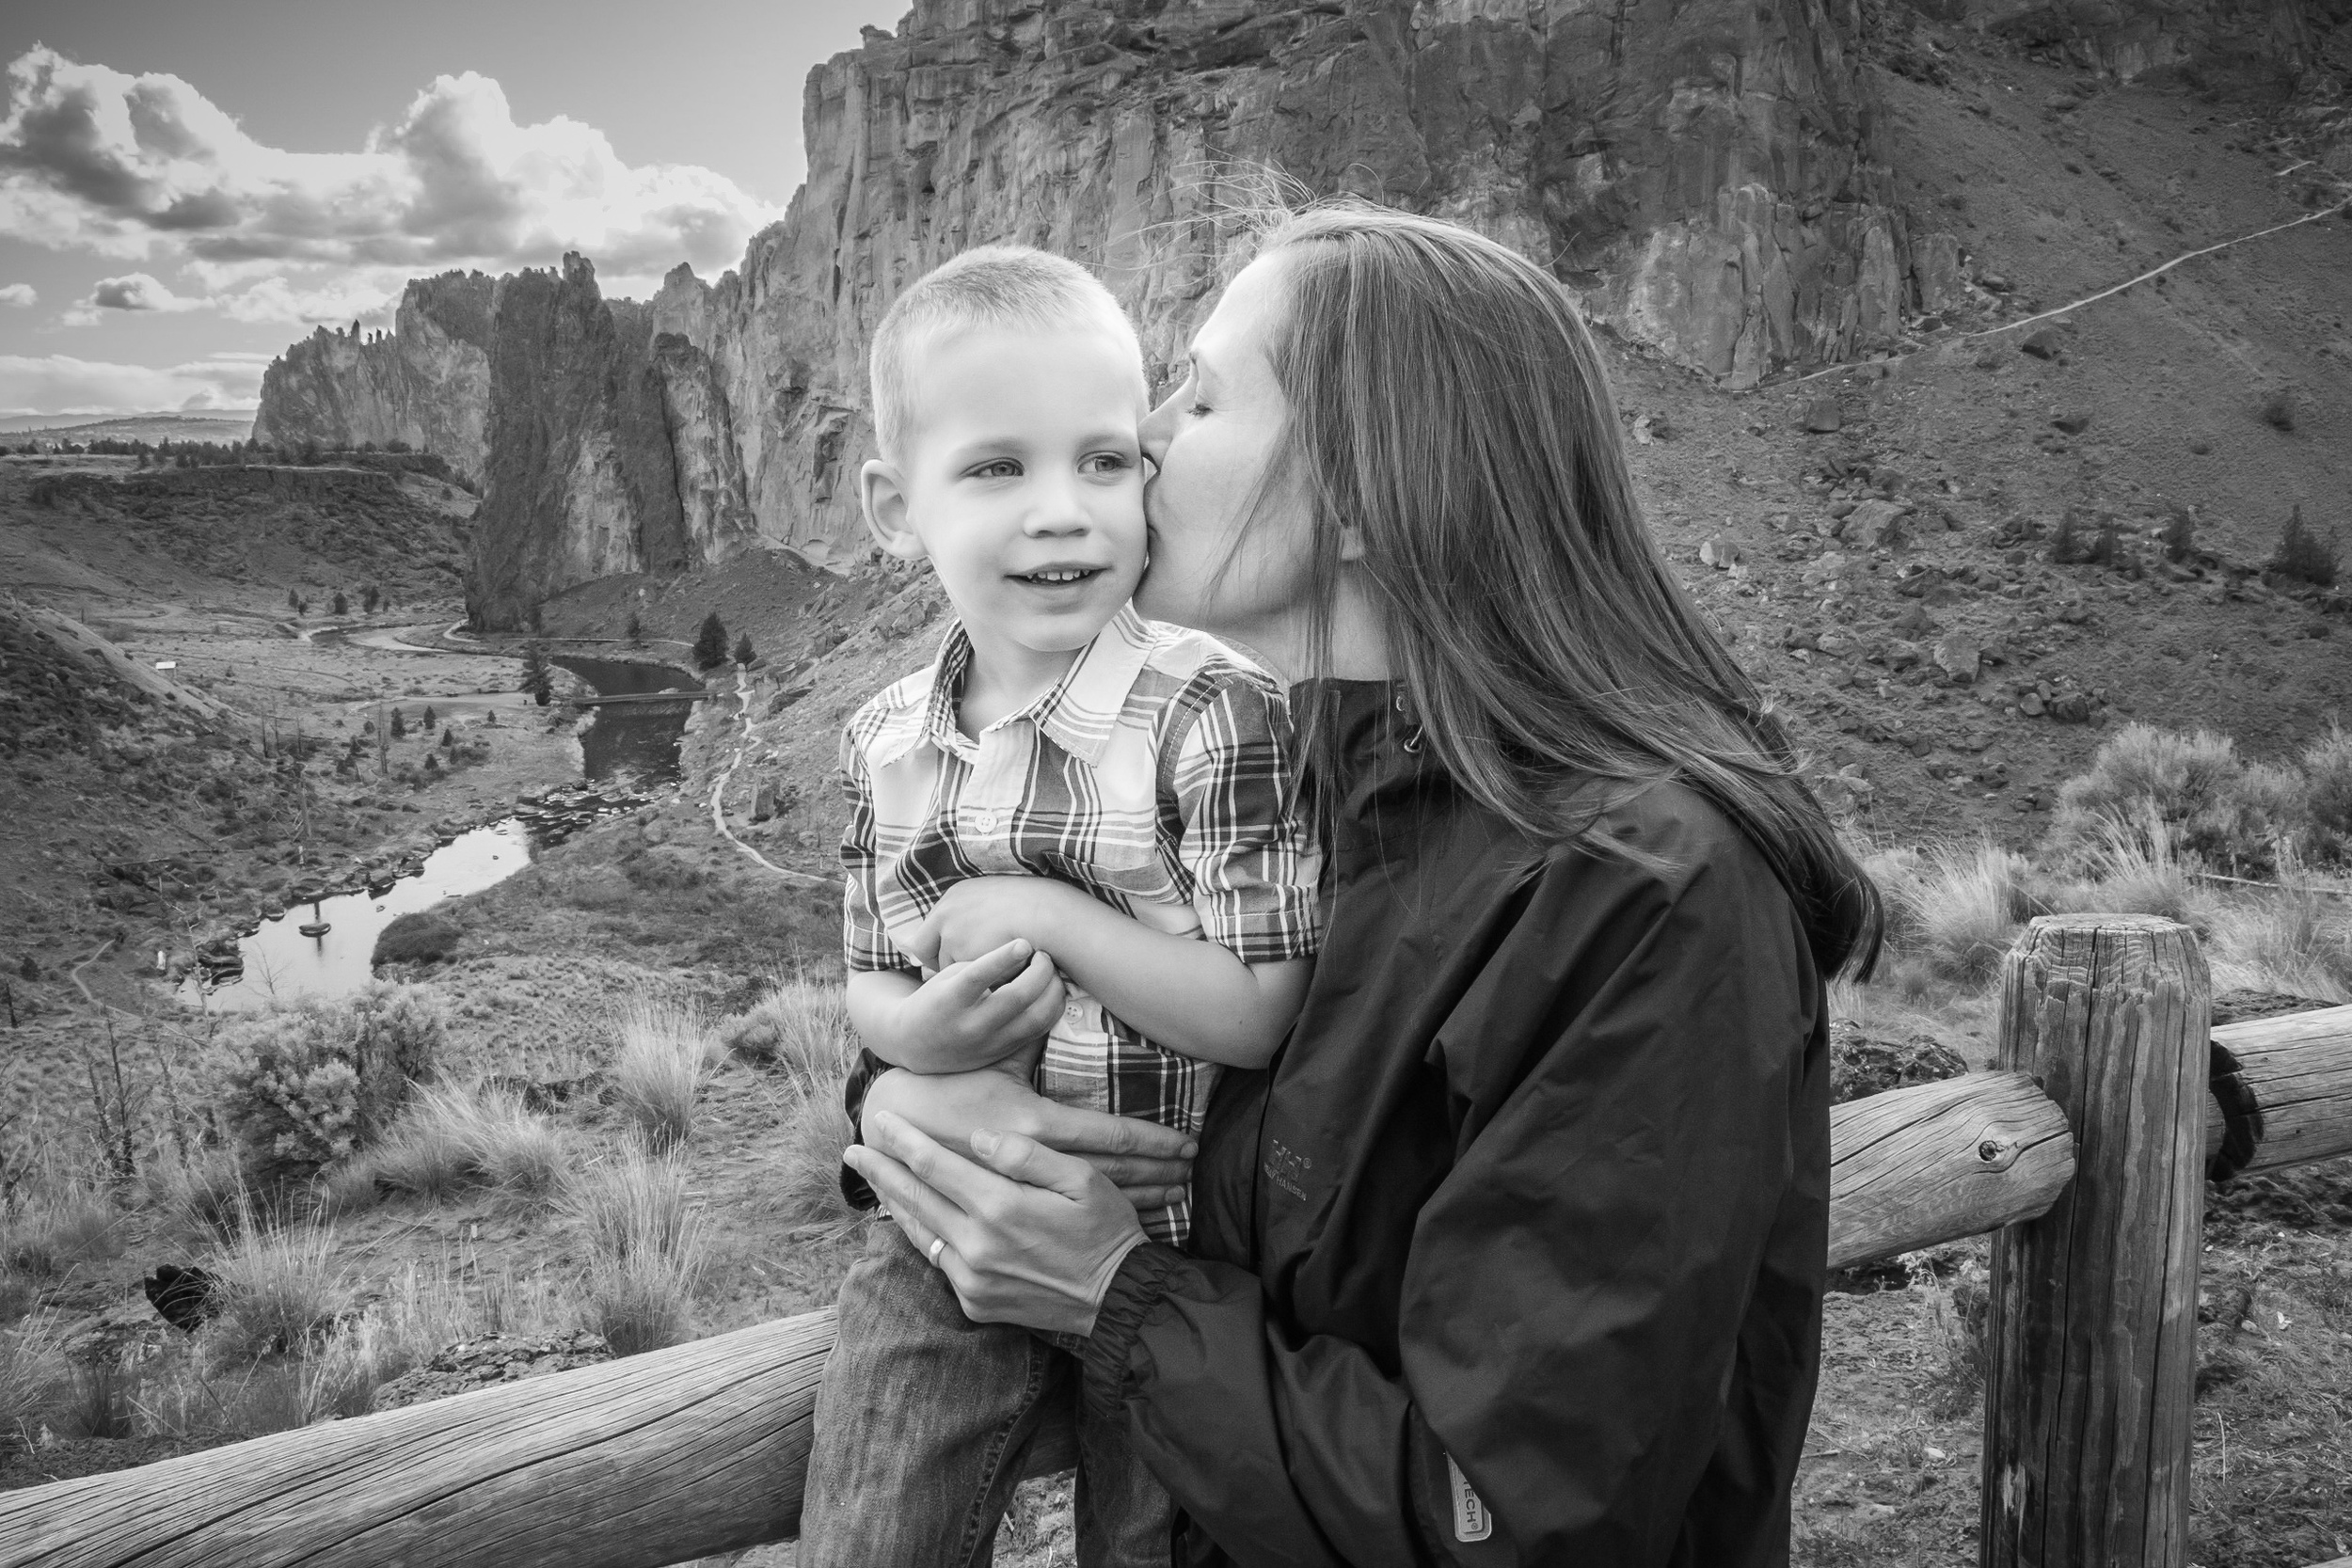 The AV was set at 22 for this photo to ensure I got good focus on both my wife and son as well as the Smith Rock park in the background. If the AV was low like a 2.8 or 4.0 then you would have lost all the beautiful detail in the unique rock formations behind them.